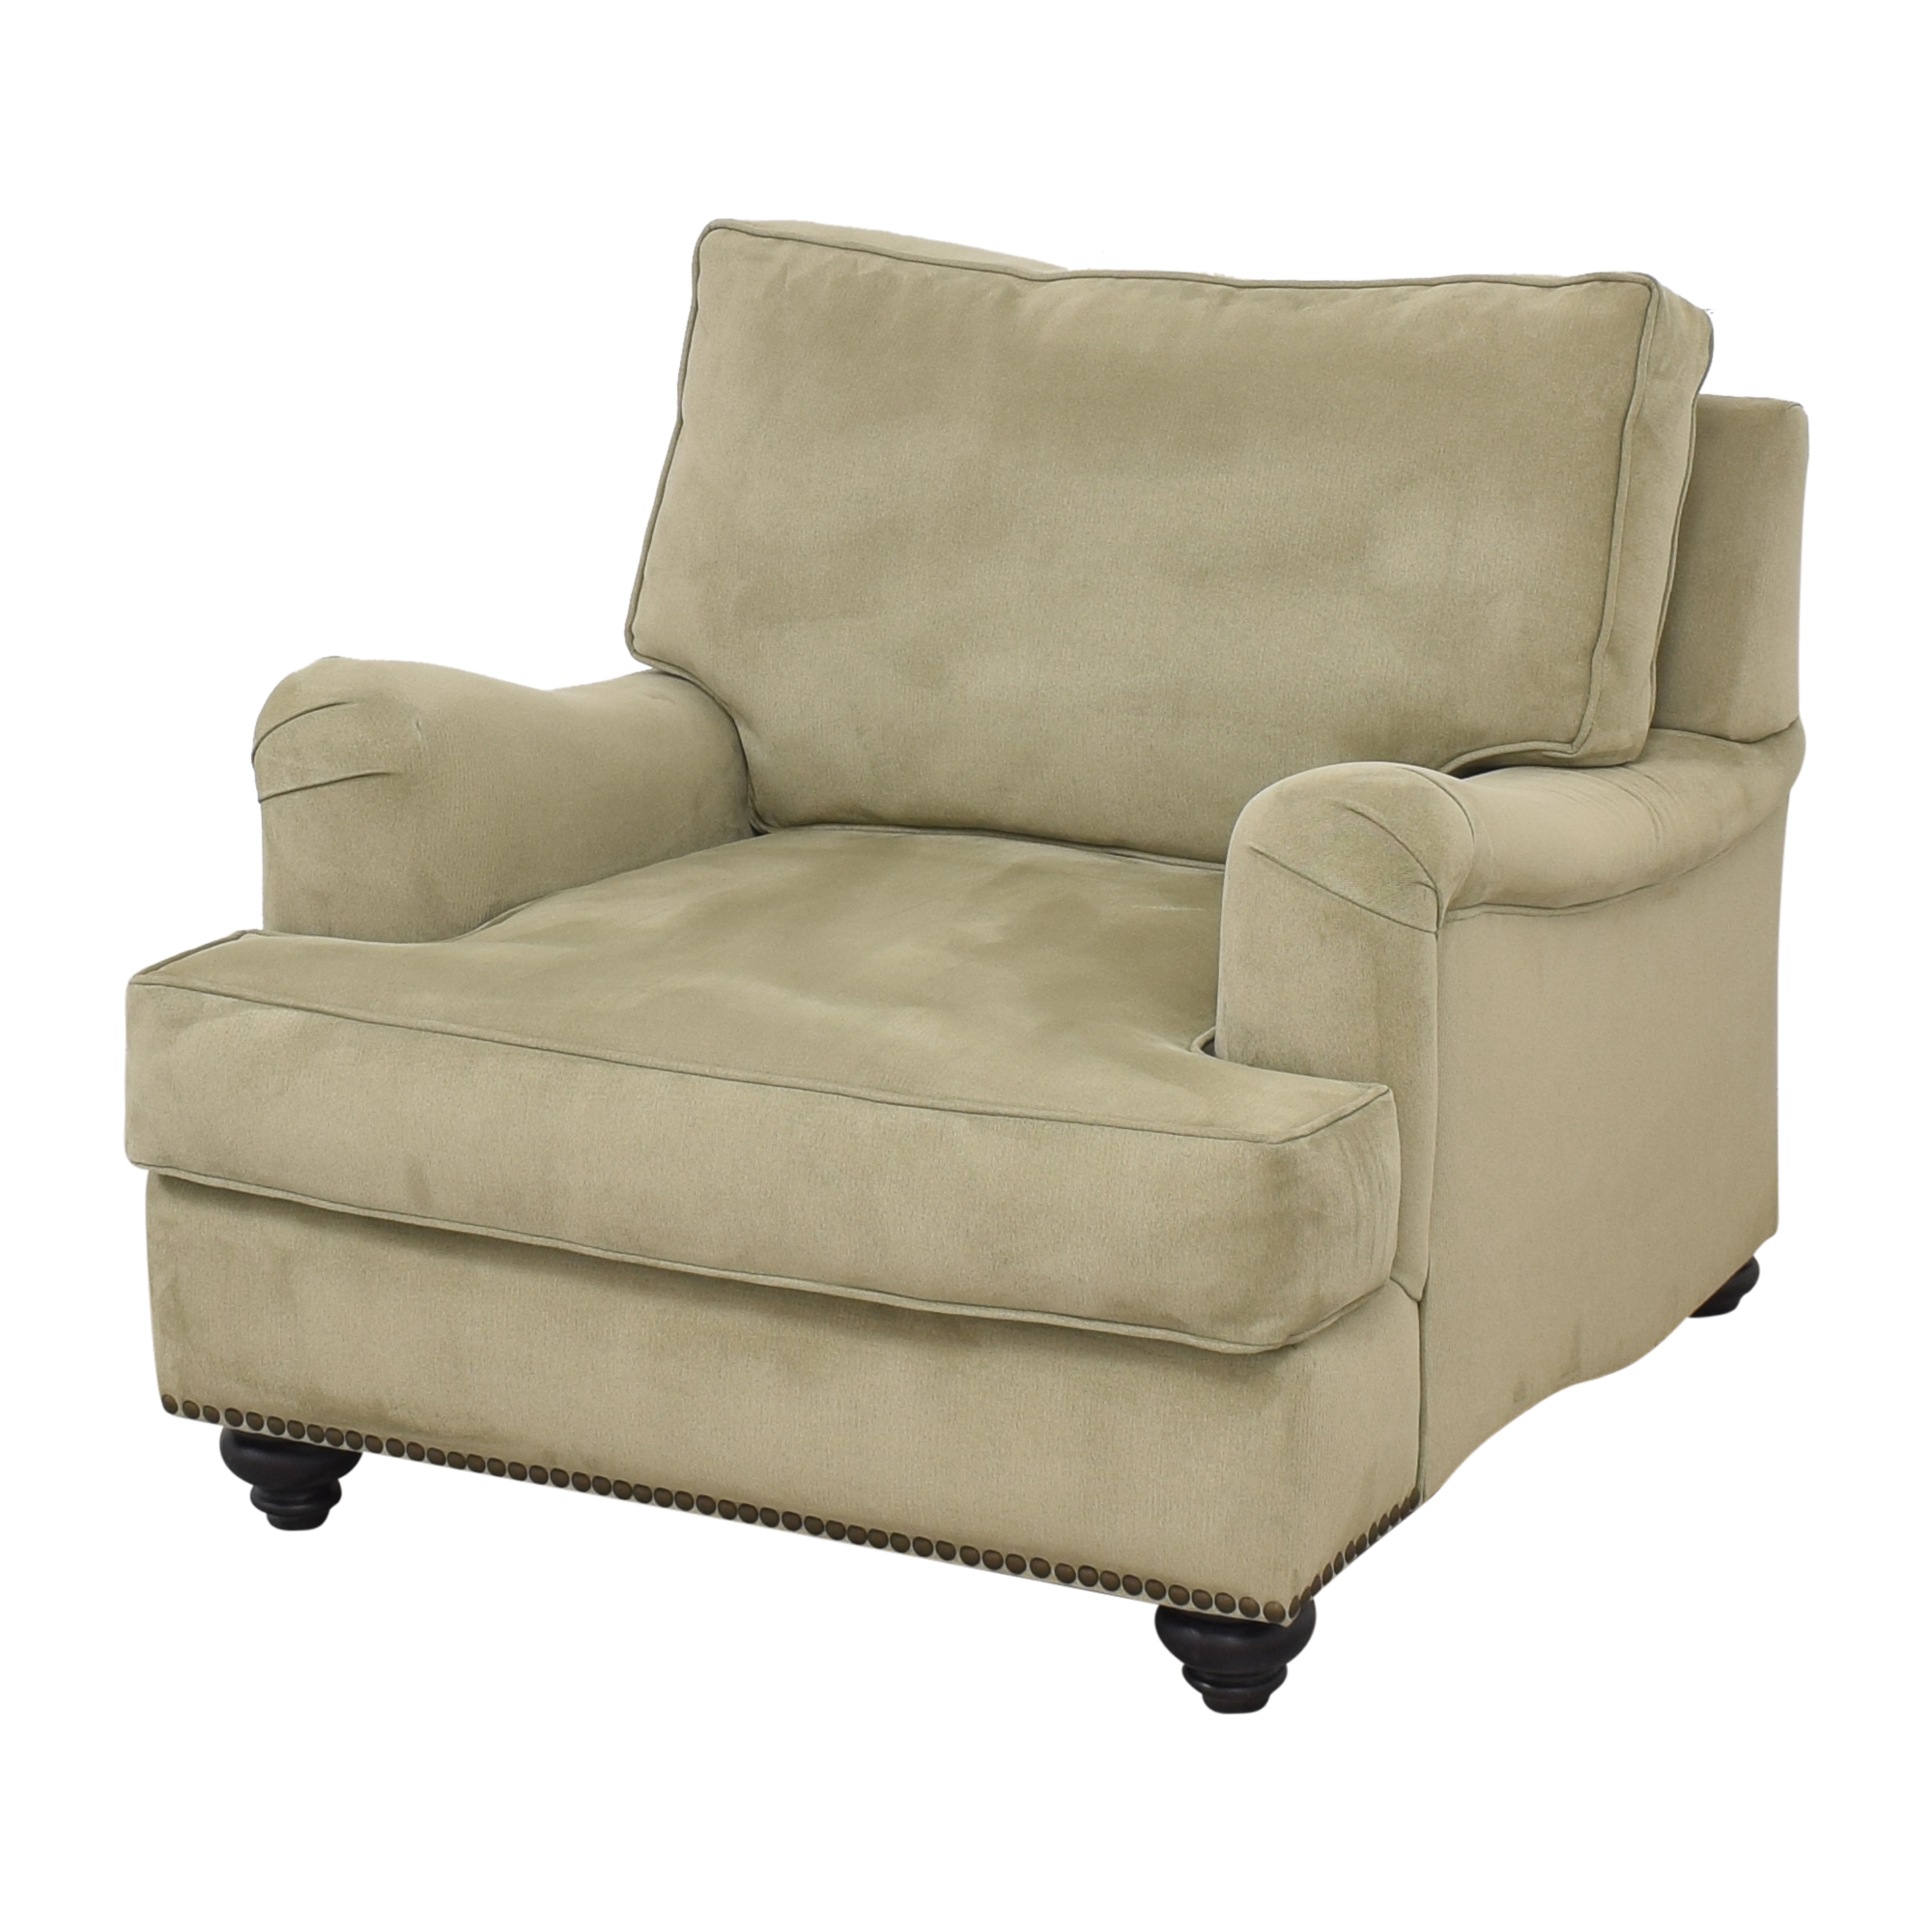 Nailhead Accent Chair with Ottoman Accent Chairs